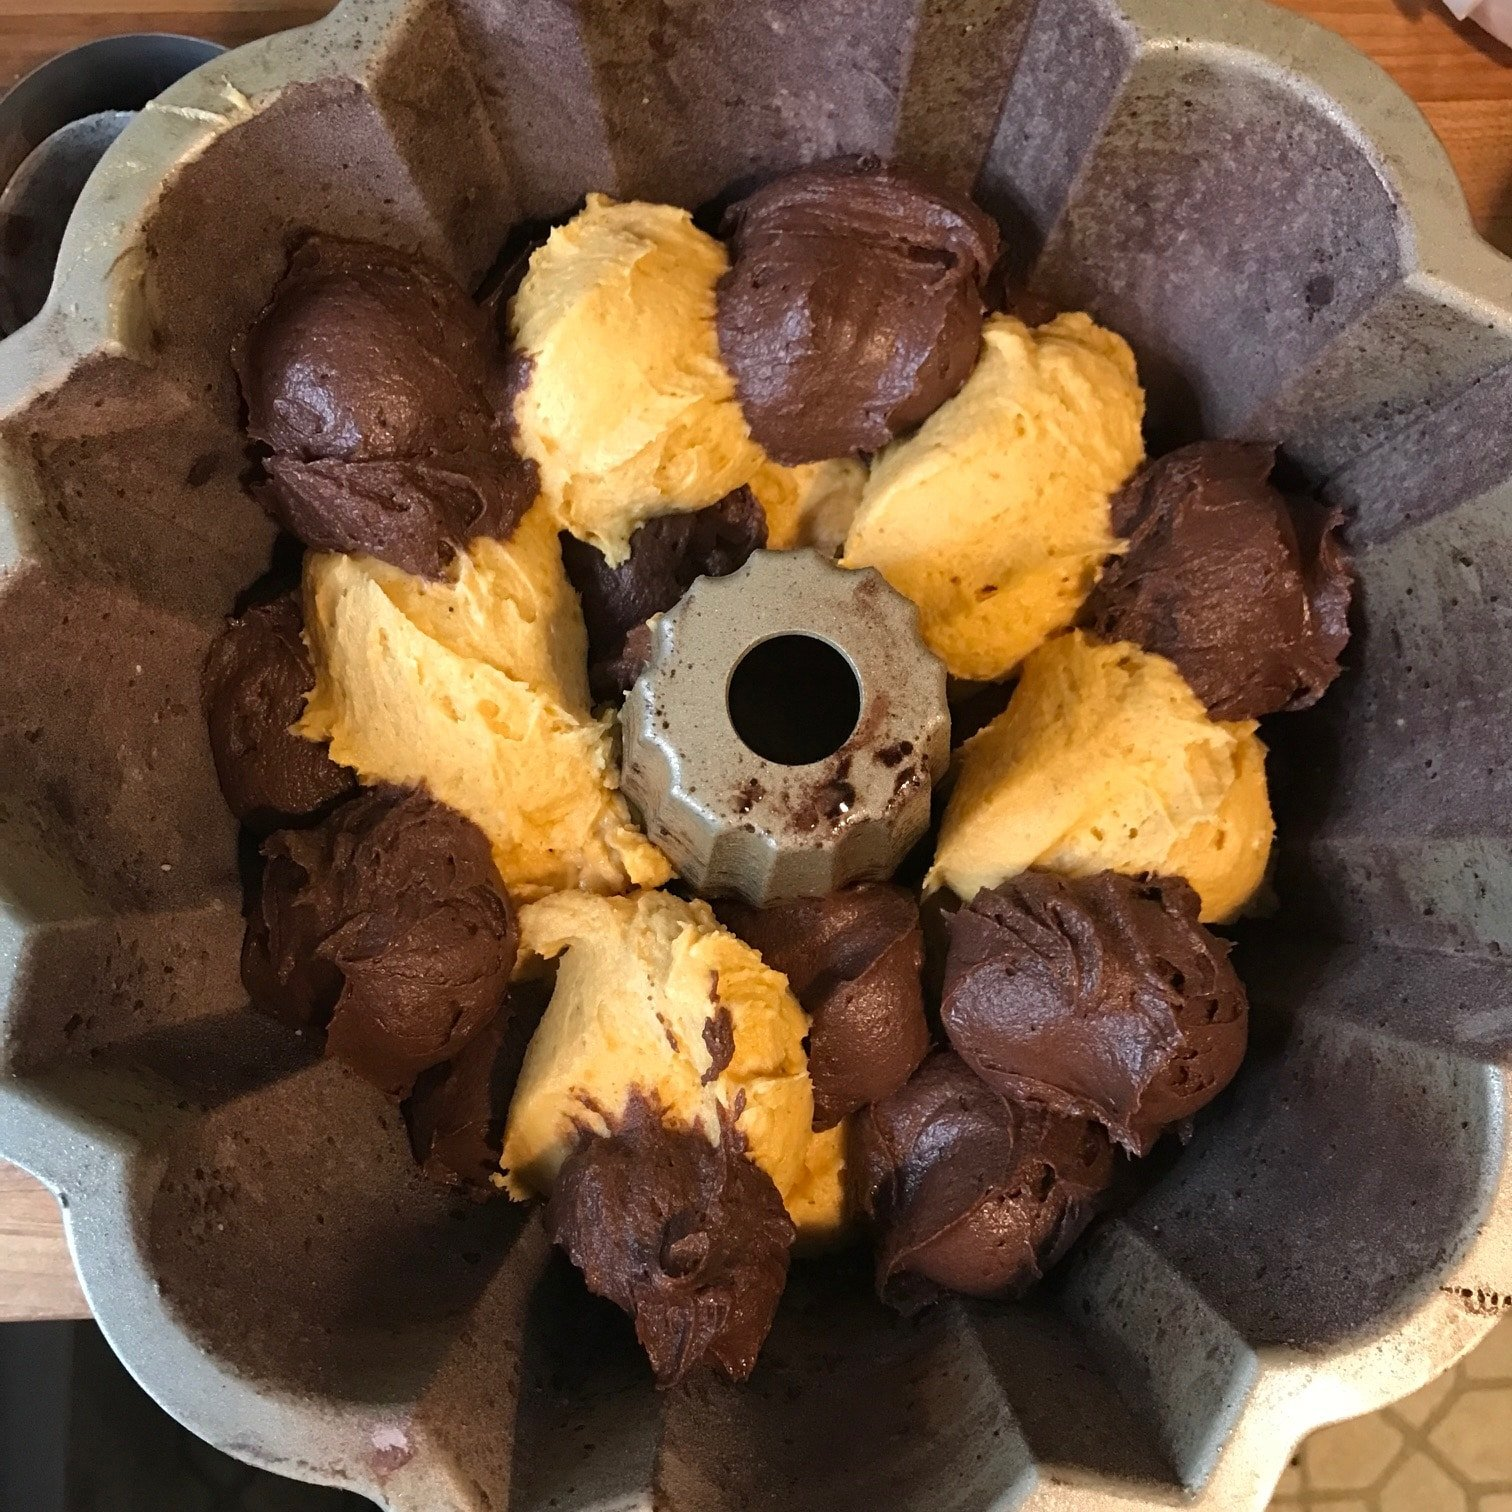 Pumpkin and cocoa batters being placed into Bundt pan